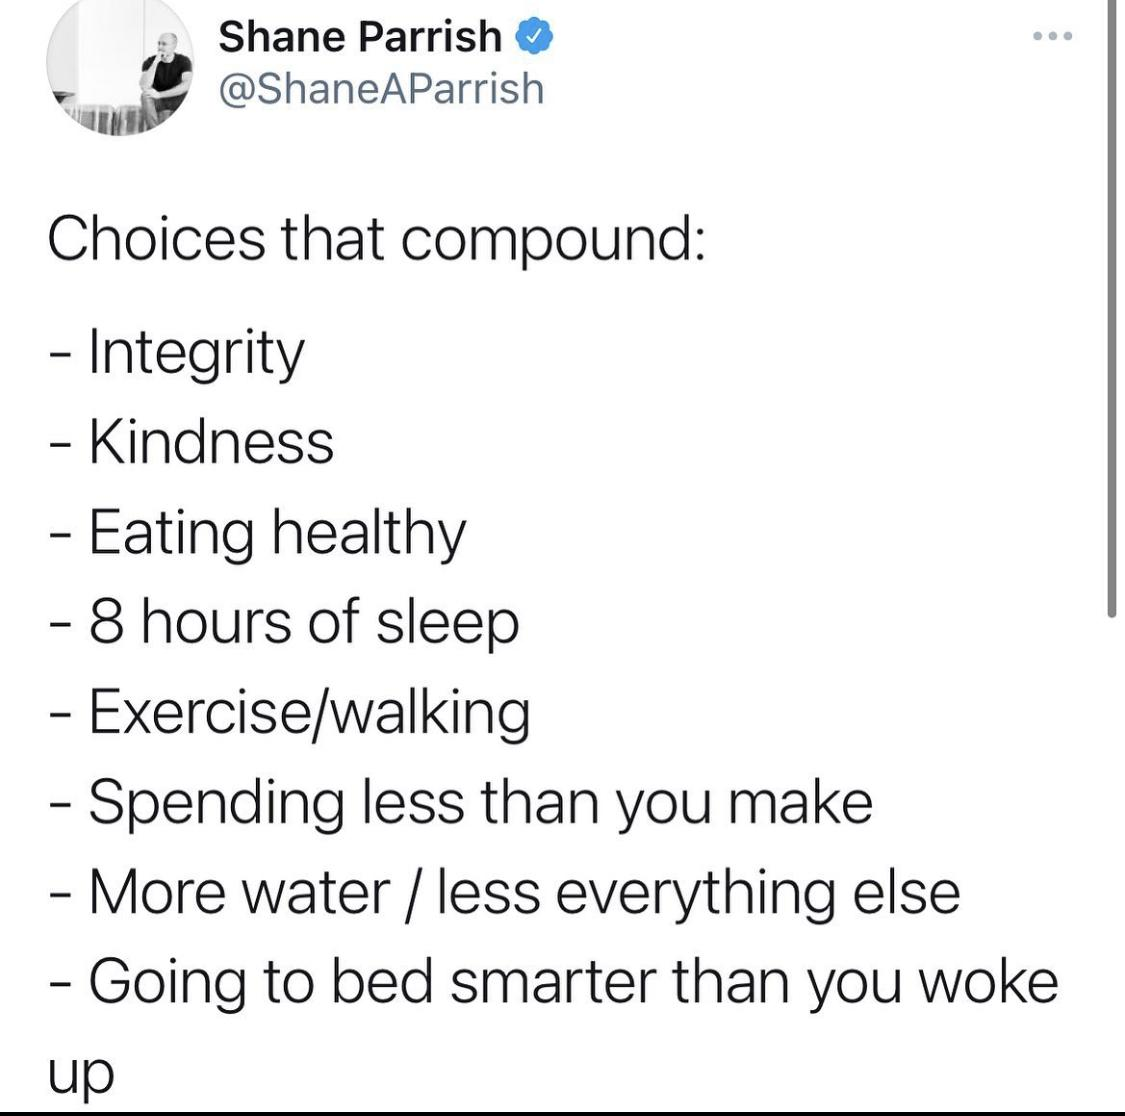 [Image] Daily Choices that compound